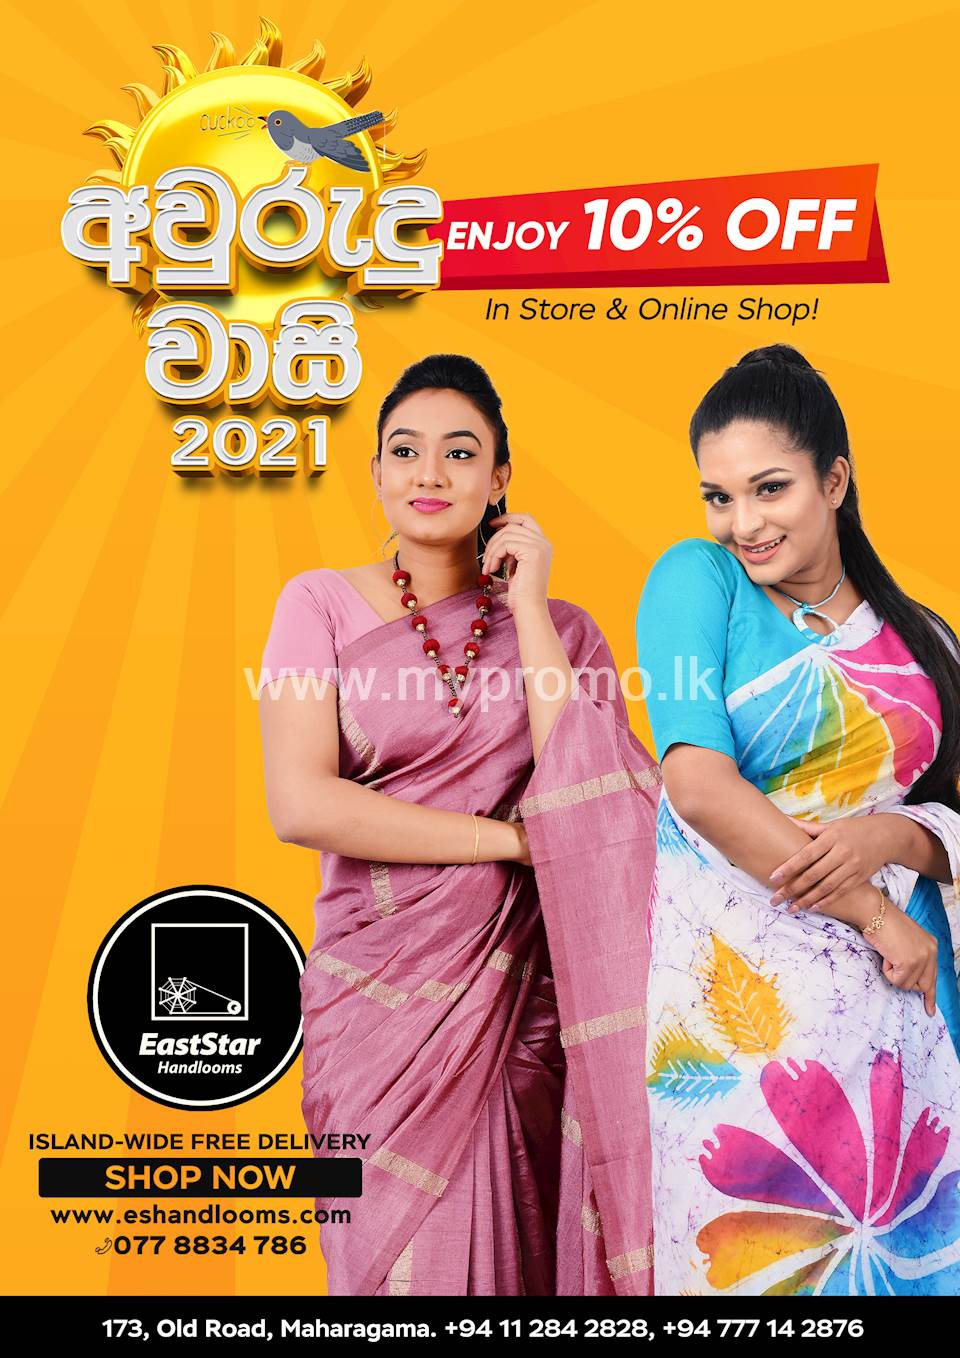 Avurudu Vaasi 2021 - Get 10% OFF on your Total Bill In-Store & Online at East Star Handlooms